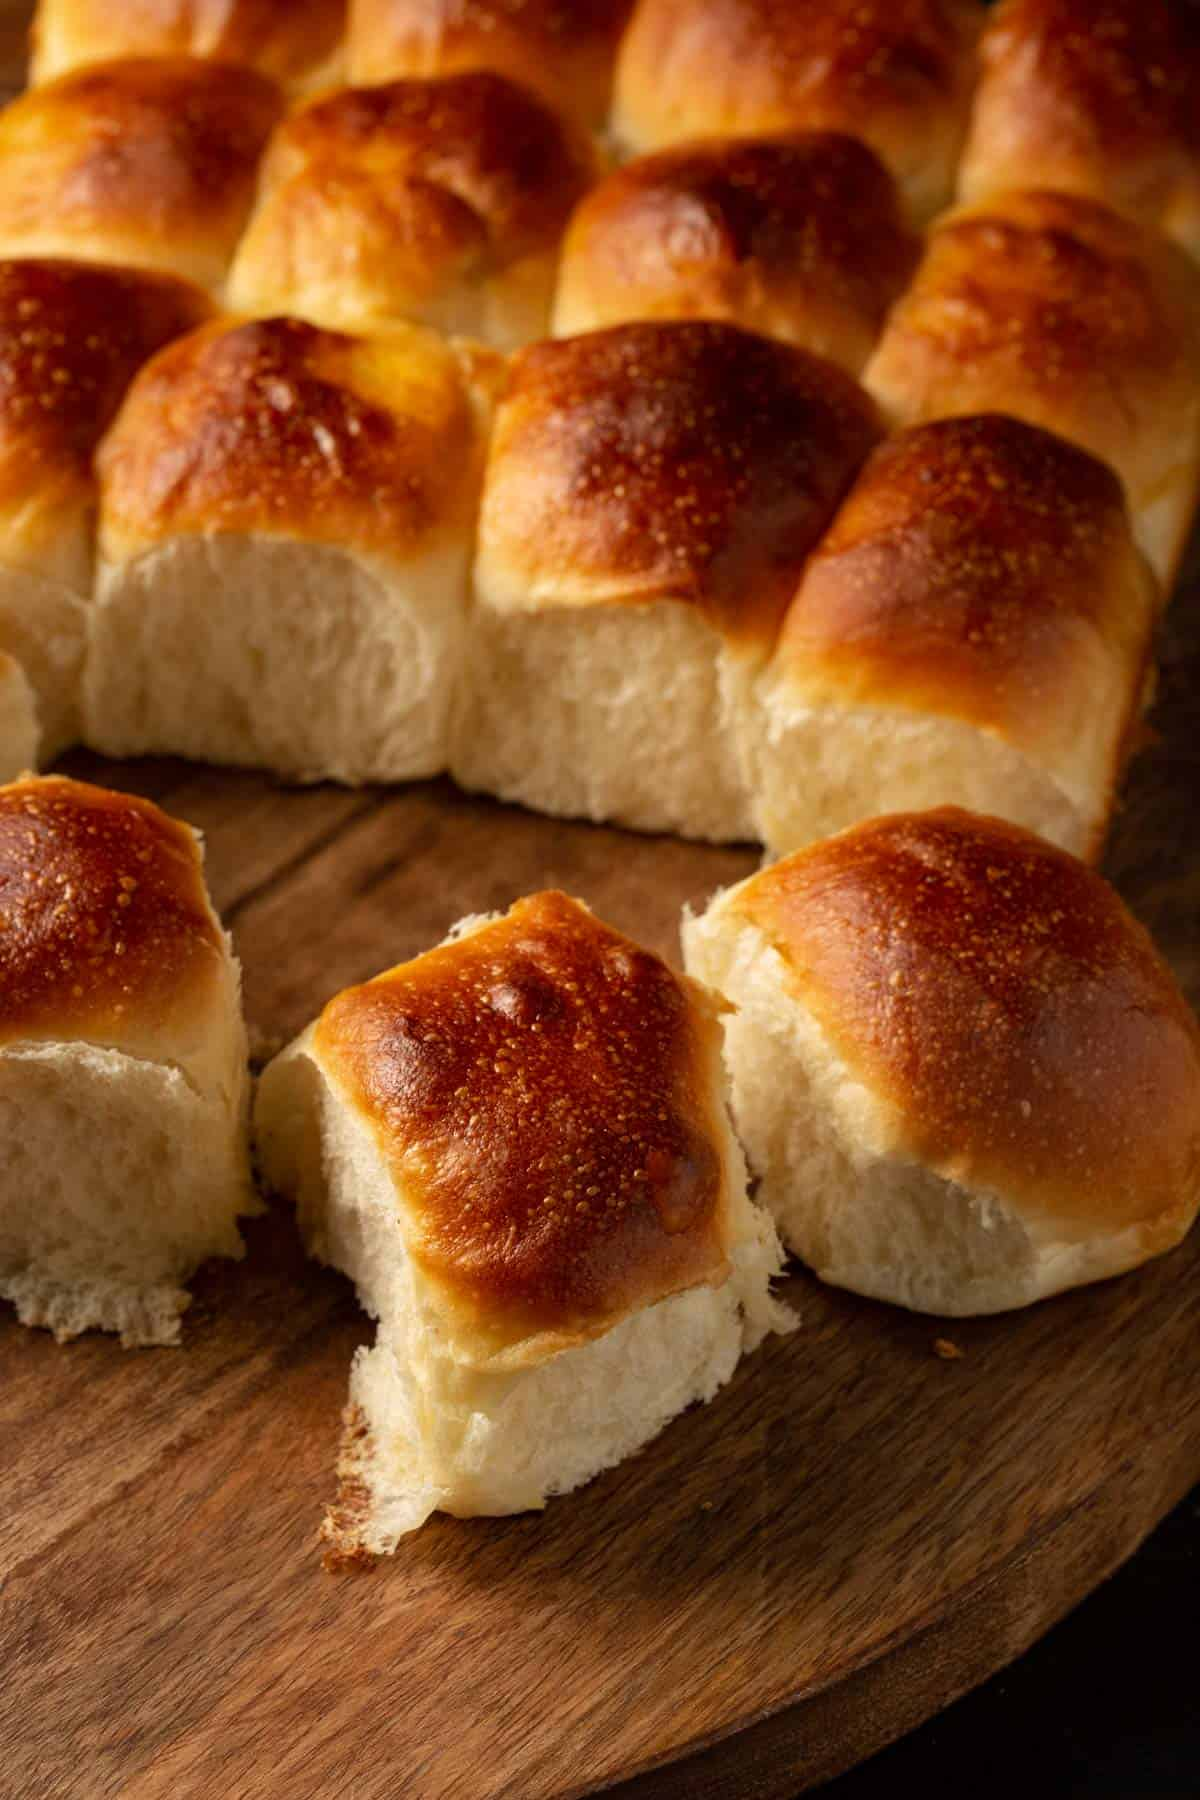 A batch of challah rolls on a wooden board.